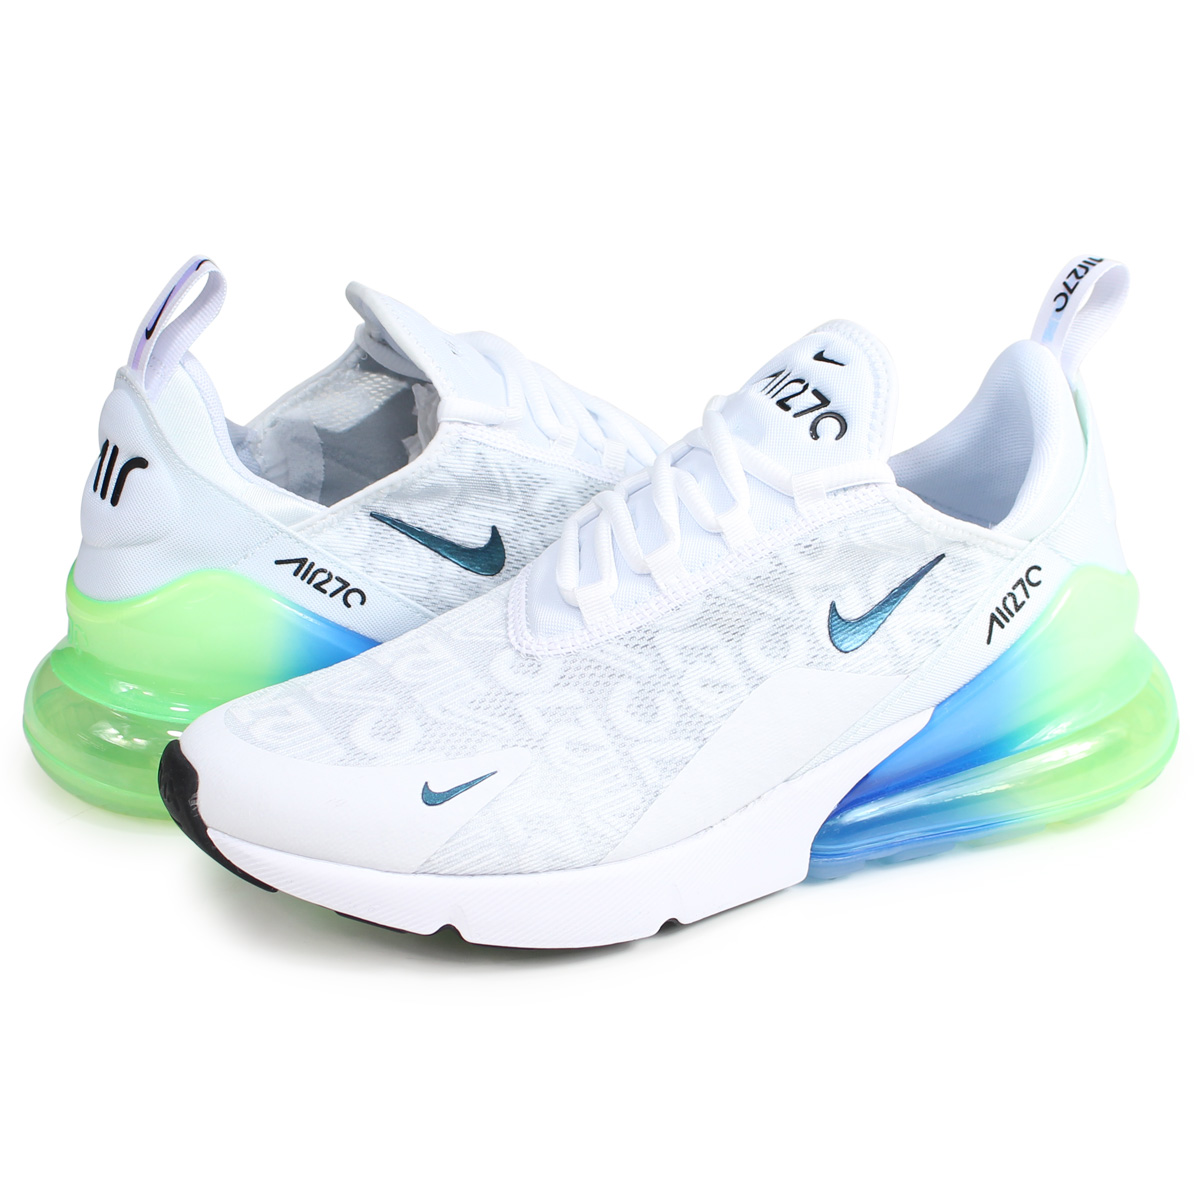 half off 35a5e 06292 Nike NIKE Air Max 270 sneakers men AIR MAX 270 SE white AQ9164-100  load  planned Shinnyu load in reservation product 2 14 containing